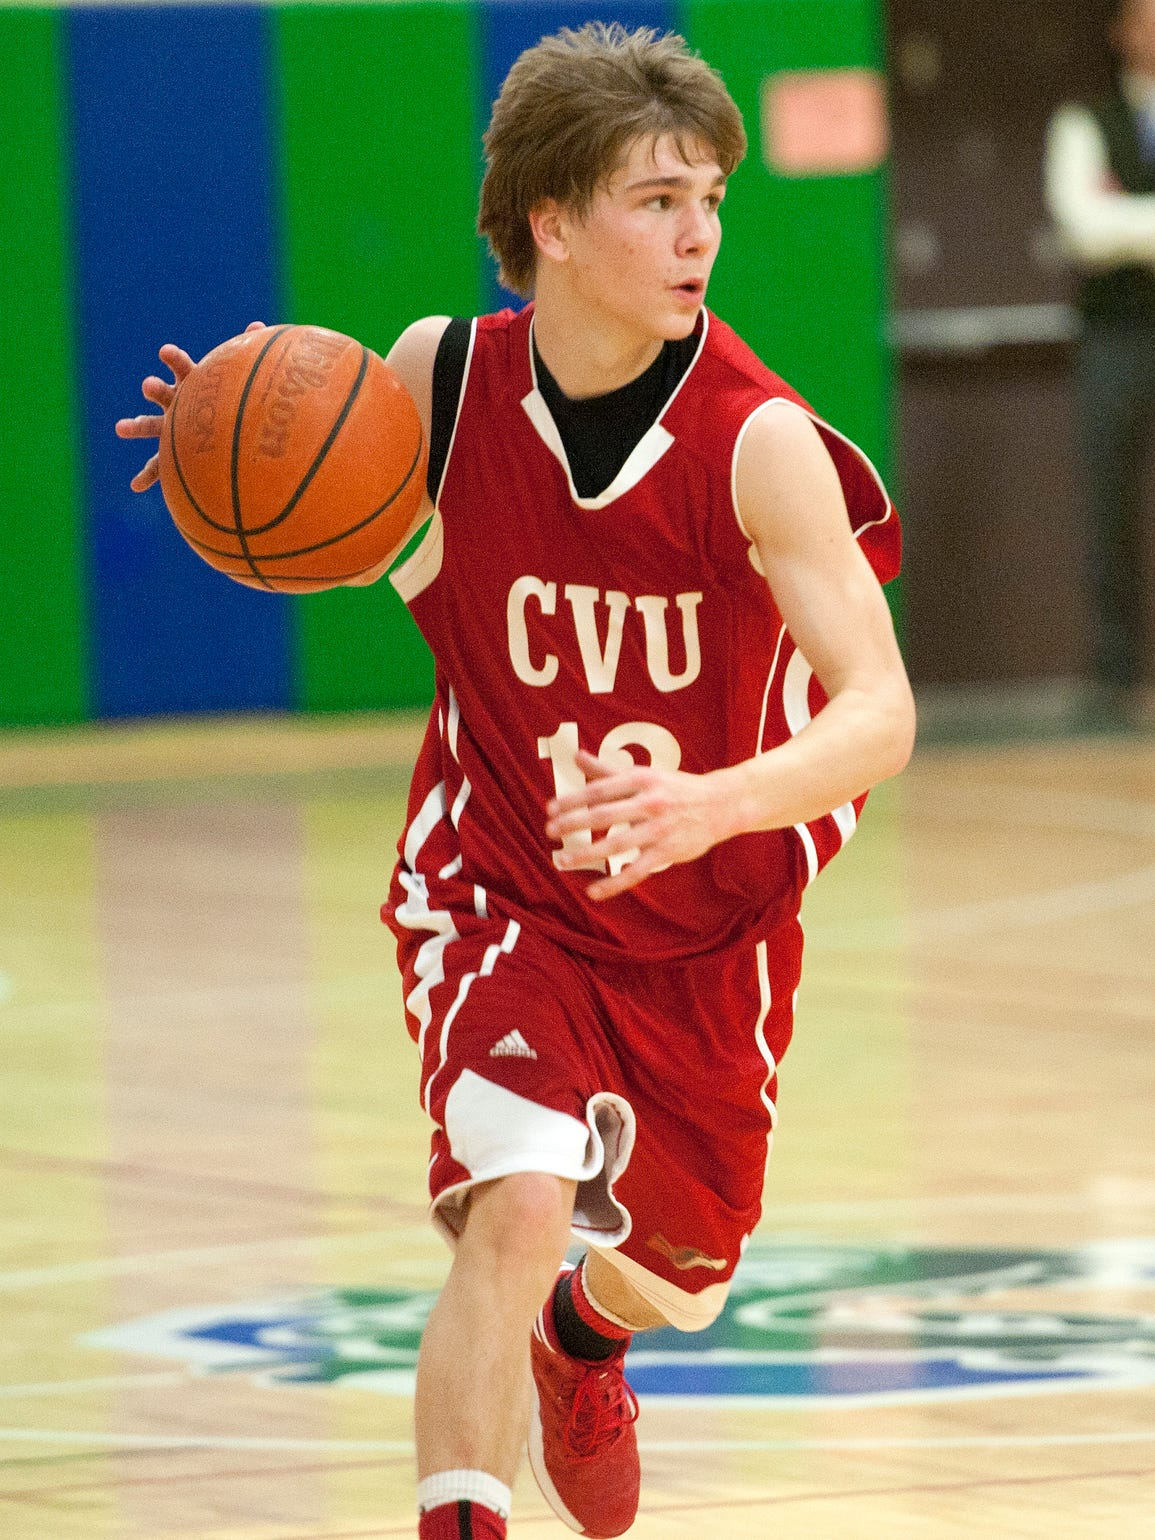 Champlain Valley's Richard Baccei dribbles down the